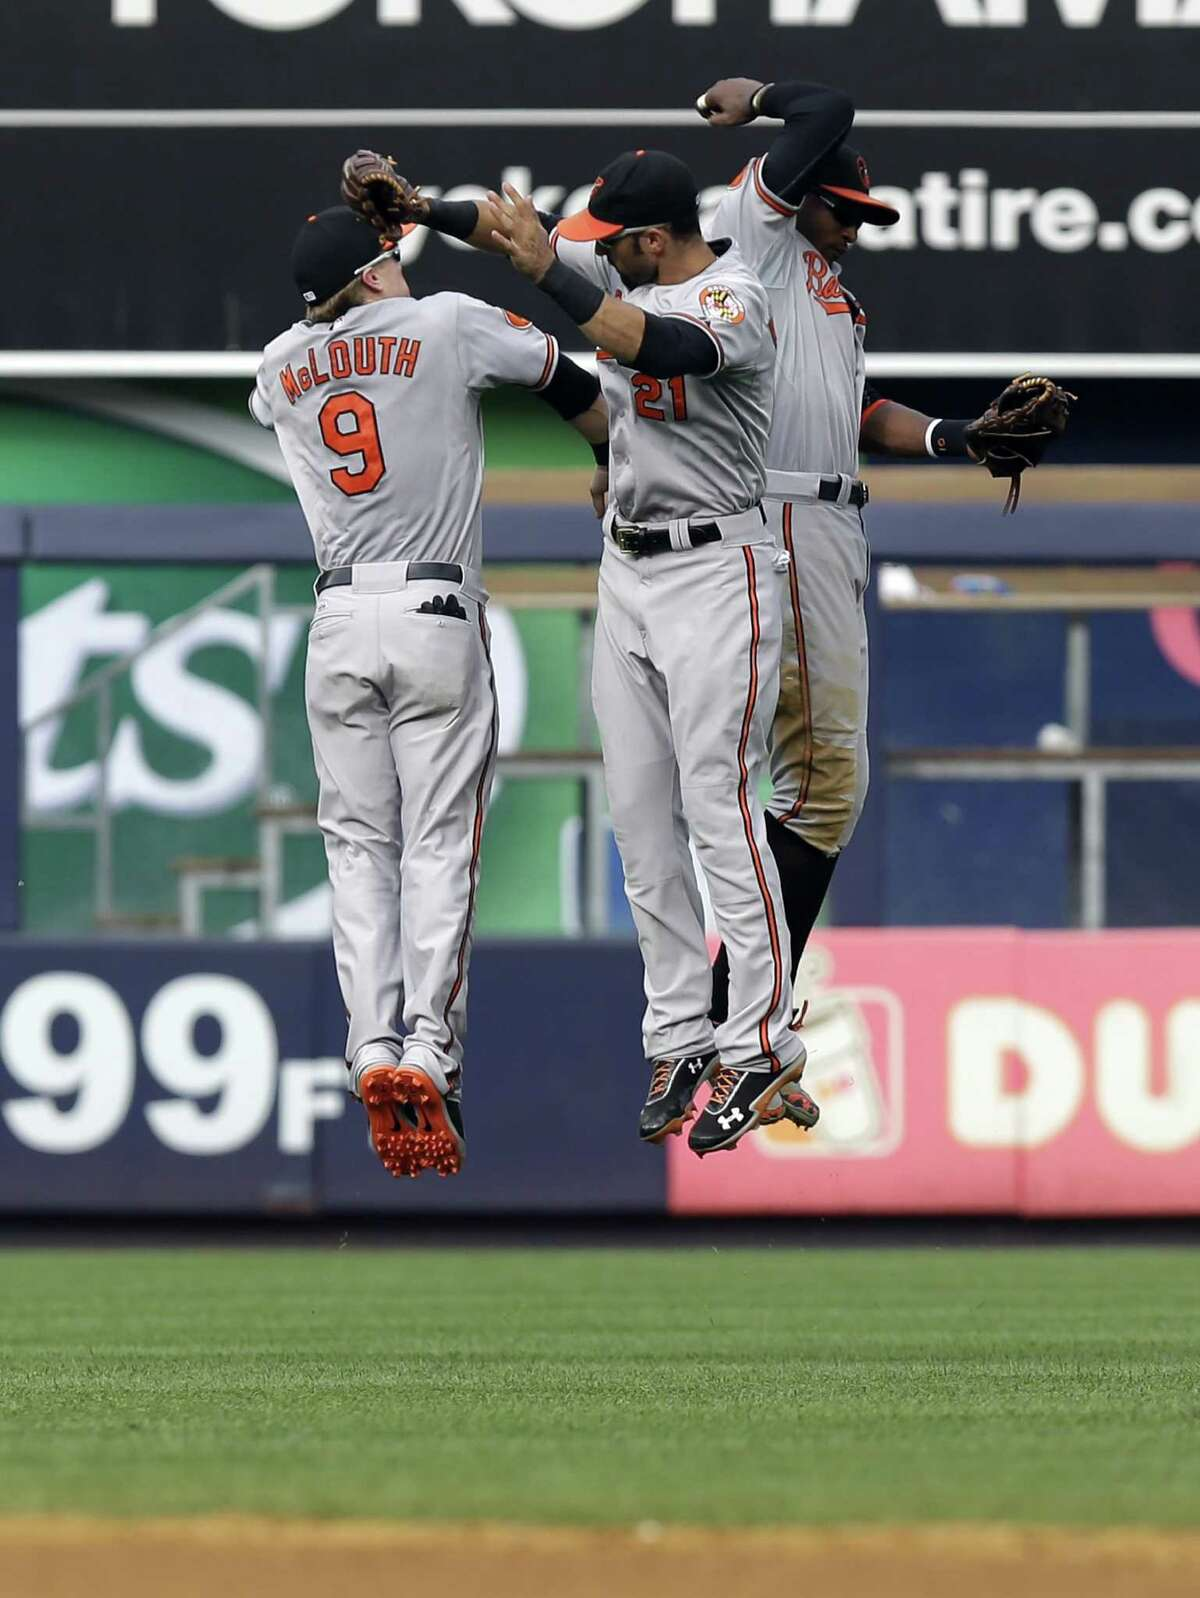 Baltimore Orioles outfielders Nate McLouth, left, Nick Markakis, center, and Adam Jones celebrate after a baseball game against the New York Yankees at Yankee Stadium, Sunday, Sept. 1, 2013, in New York. The Orioles won 7-3. (AP Photo/Seth Wenig) ORG XMIT: NYY114